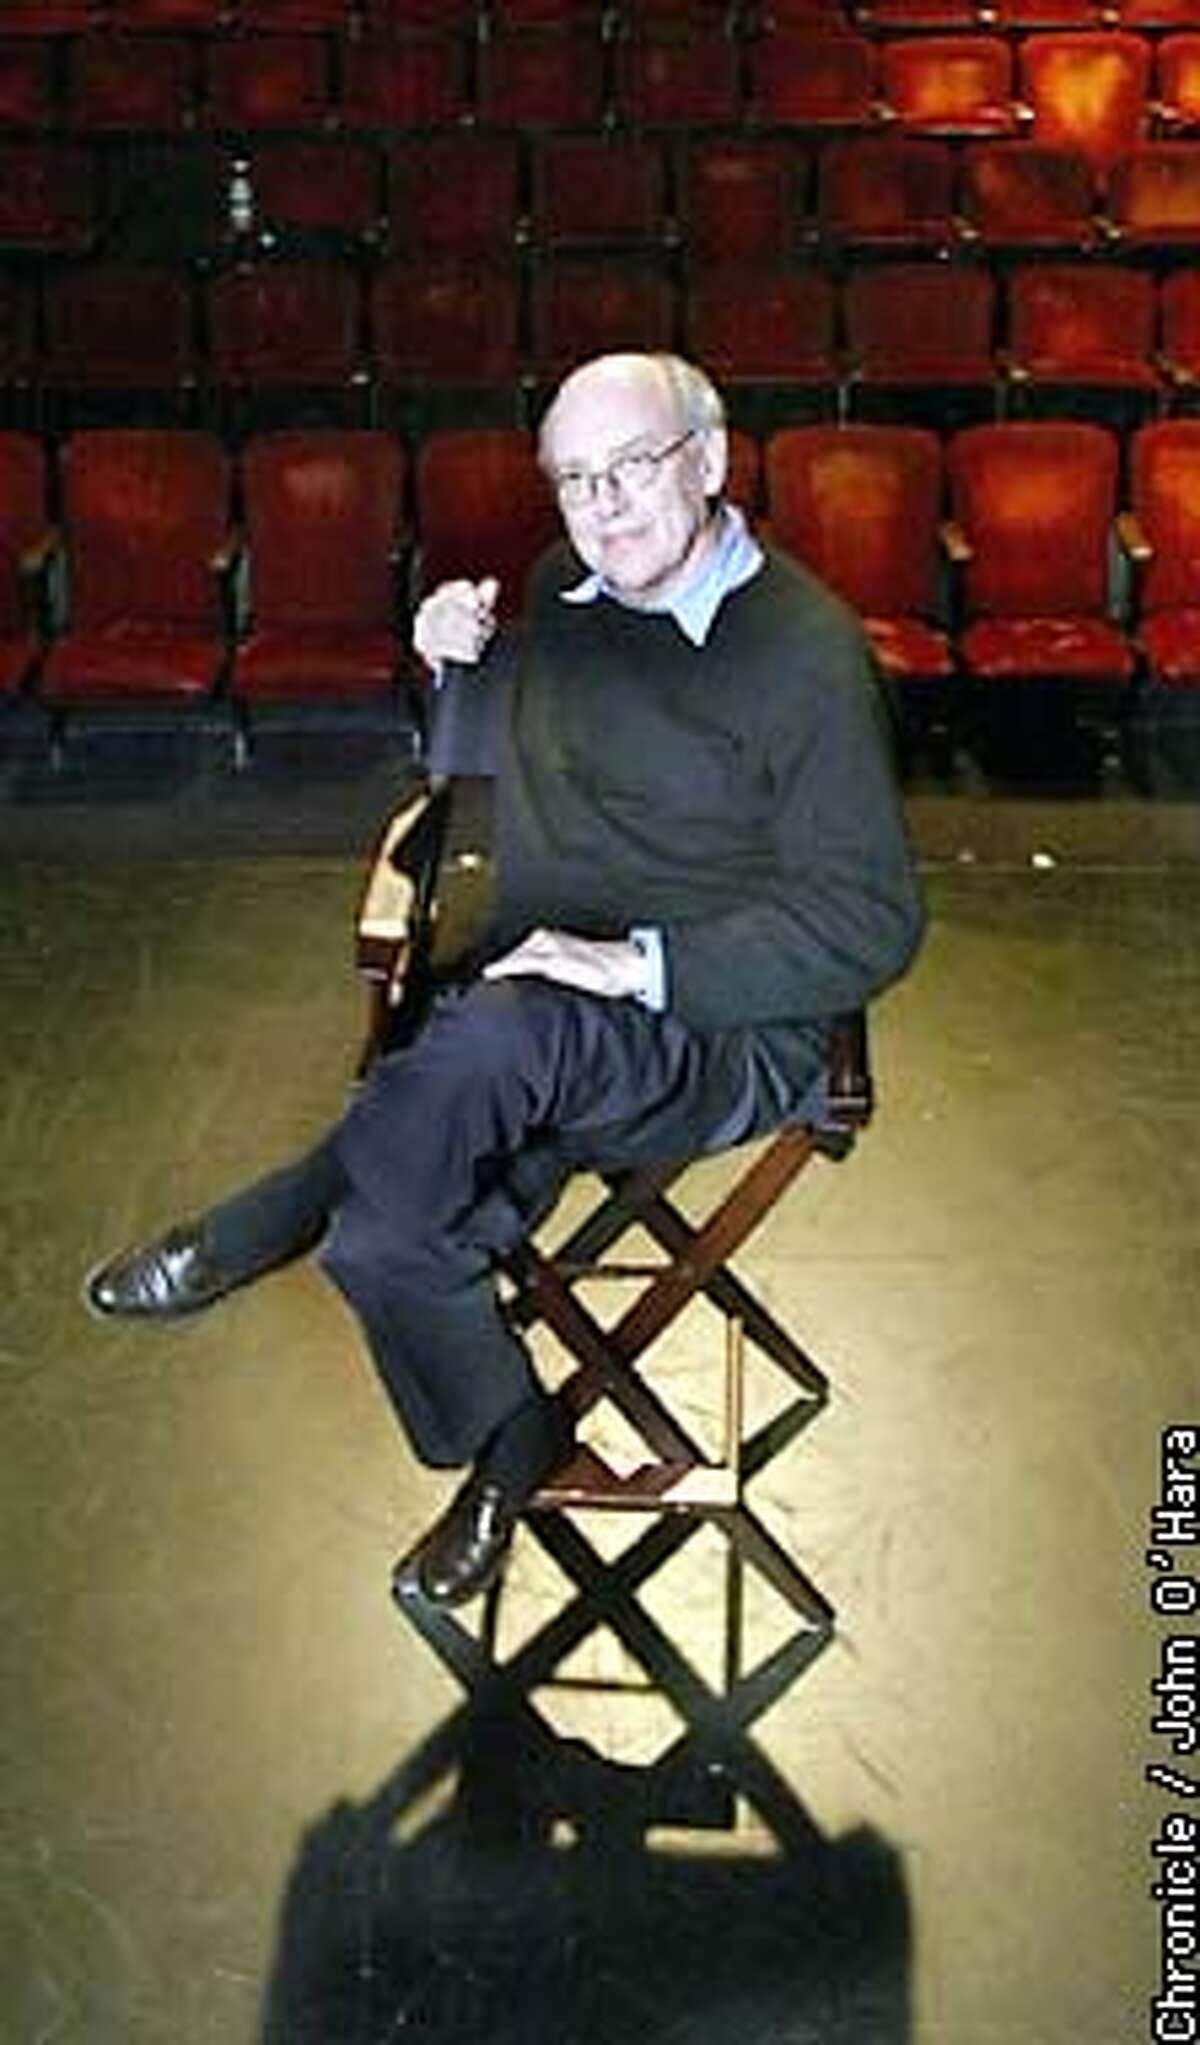 """New Conservatory Theater, 25 Van ness Ave. San Francisco. Mart Crowley, playwright """"Boys and the Band"""". has written the sequel. photo/John O'Hara"""